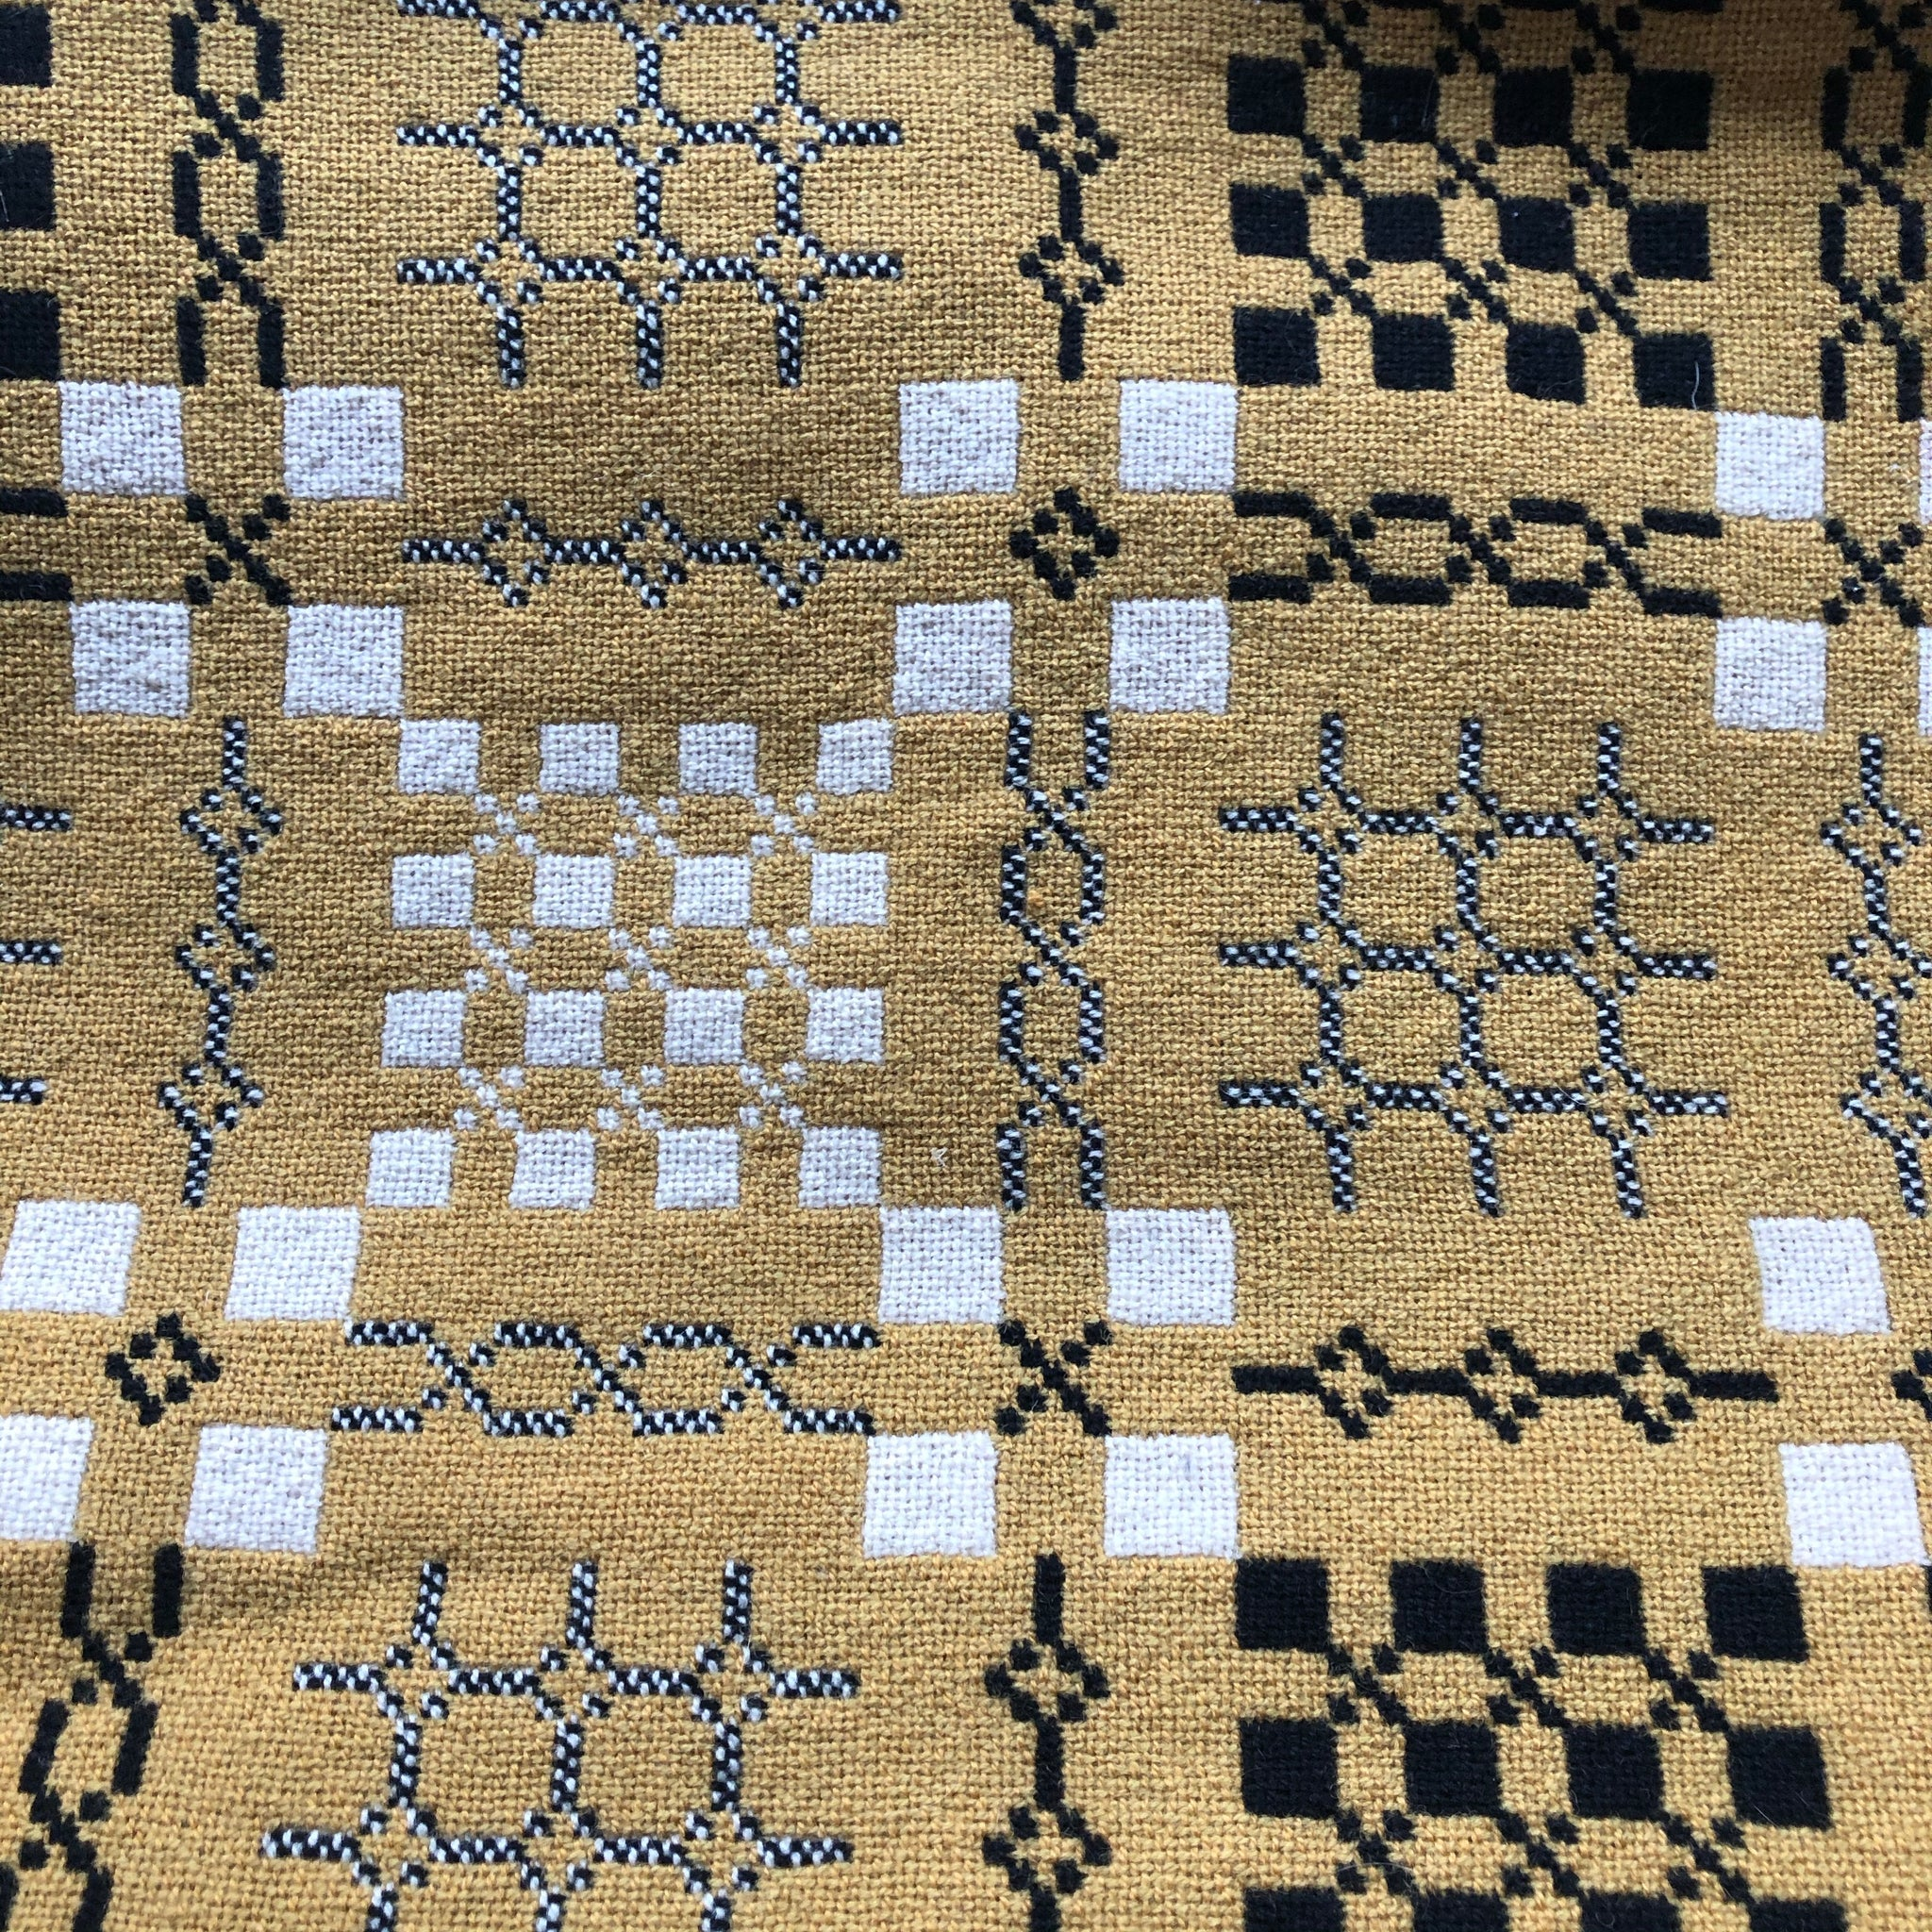 Vintage Welsh Tapestry Blanket - Mustard and Black